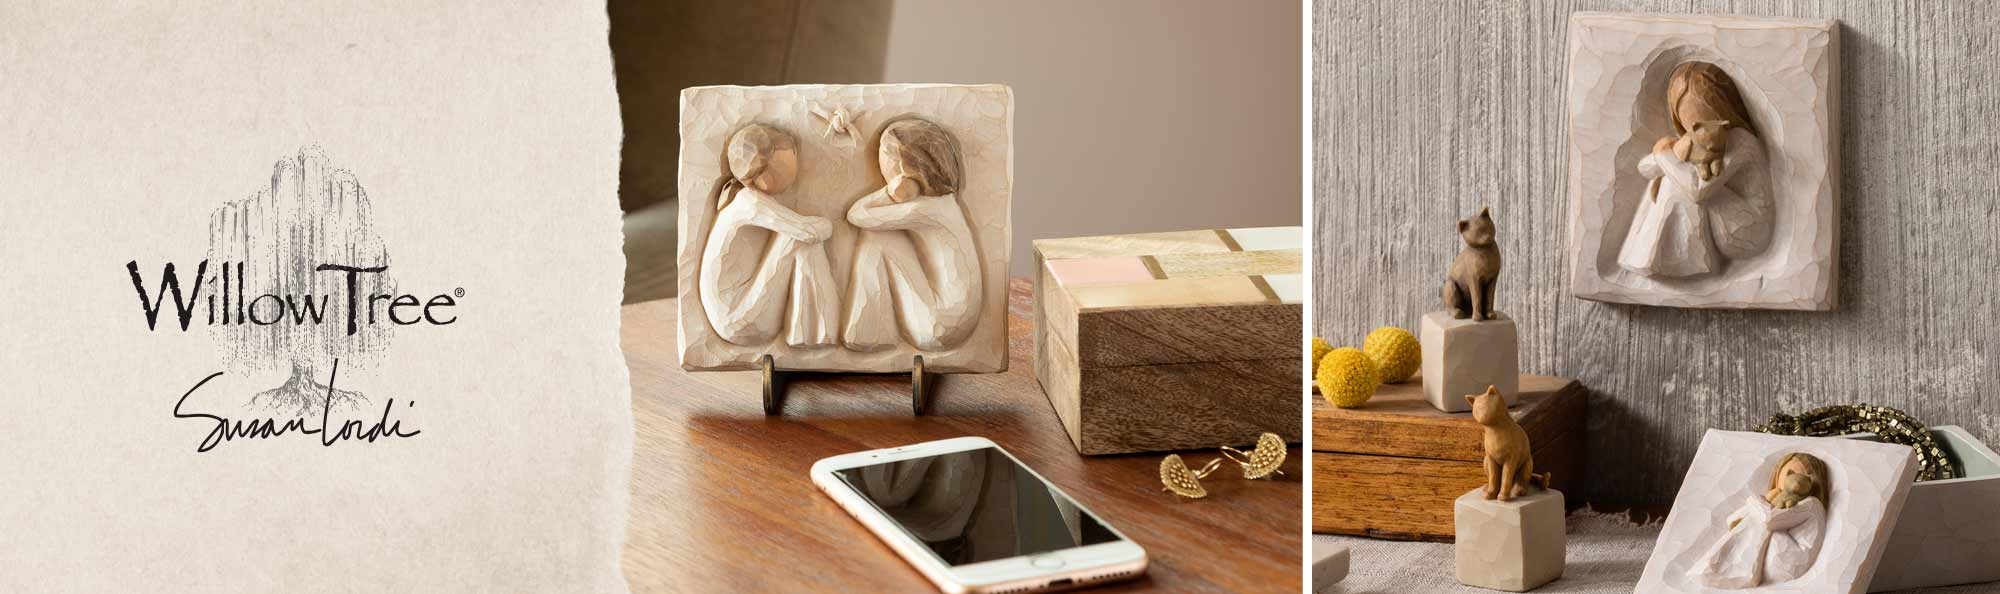 Willow Tree by Susan Lordi. Hand carved square plaques of a girl hugging a cat and two girls sitting together.